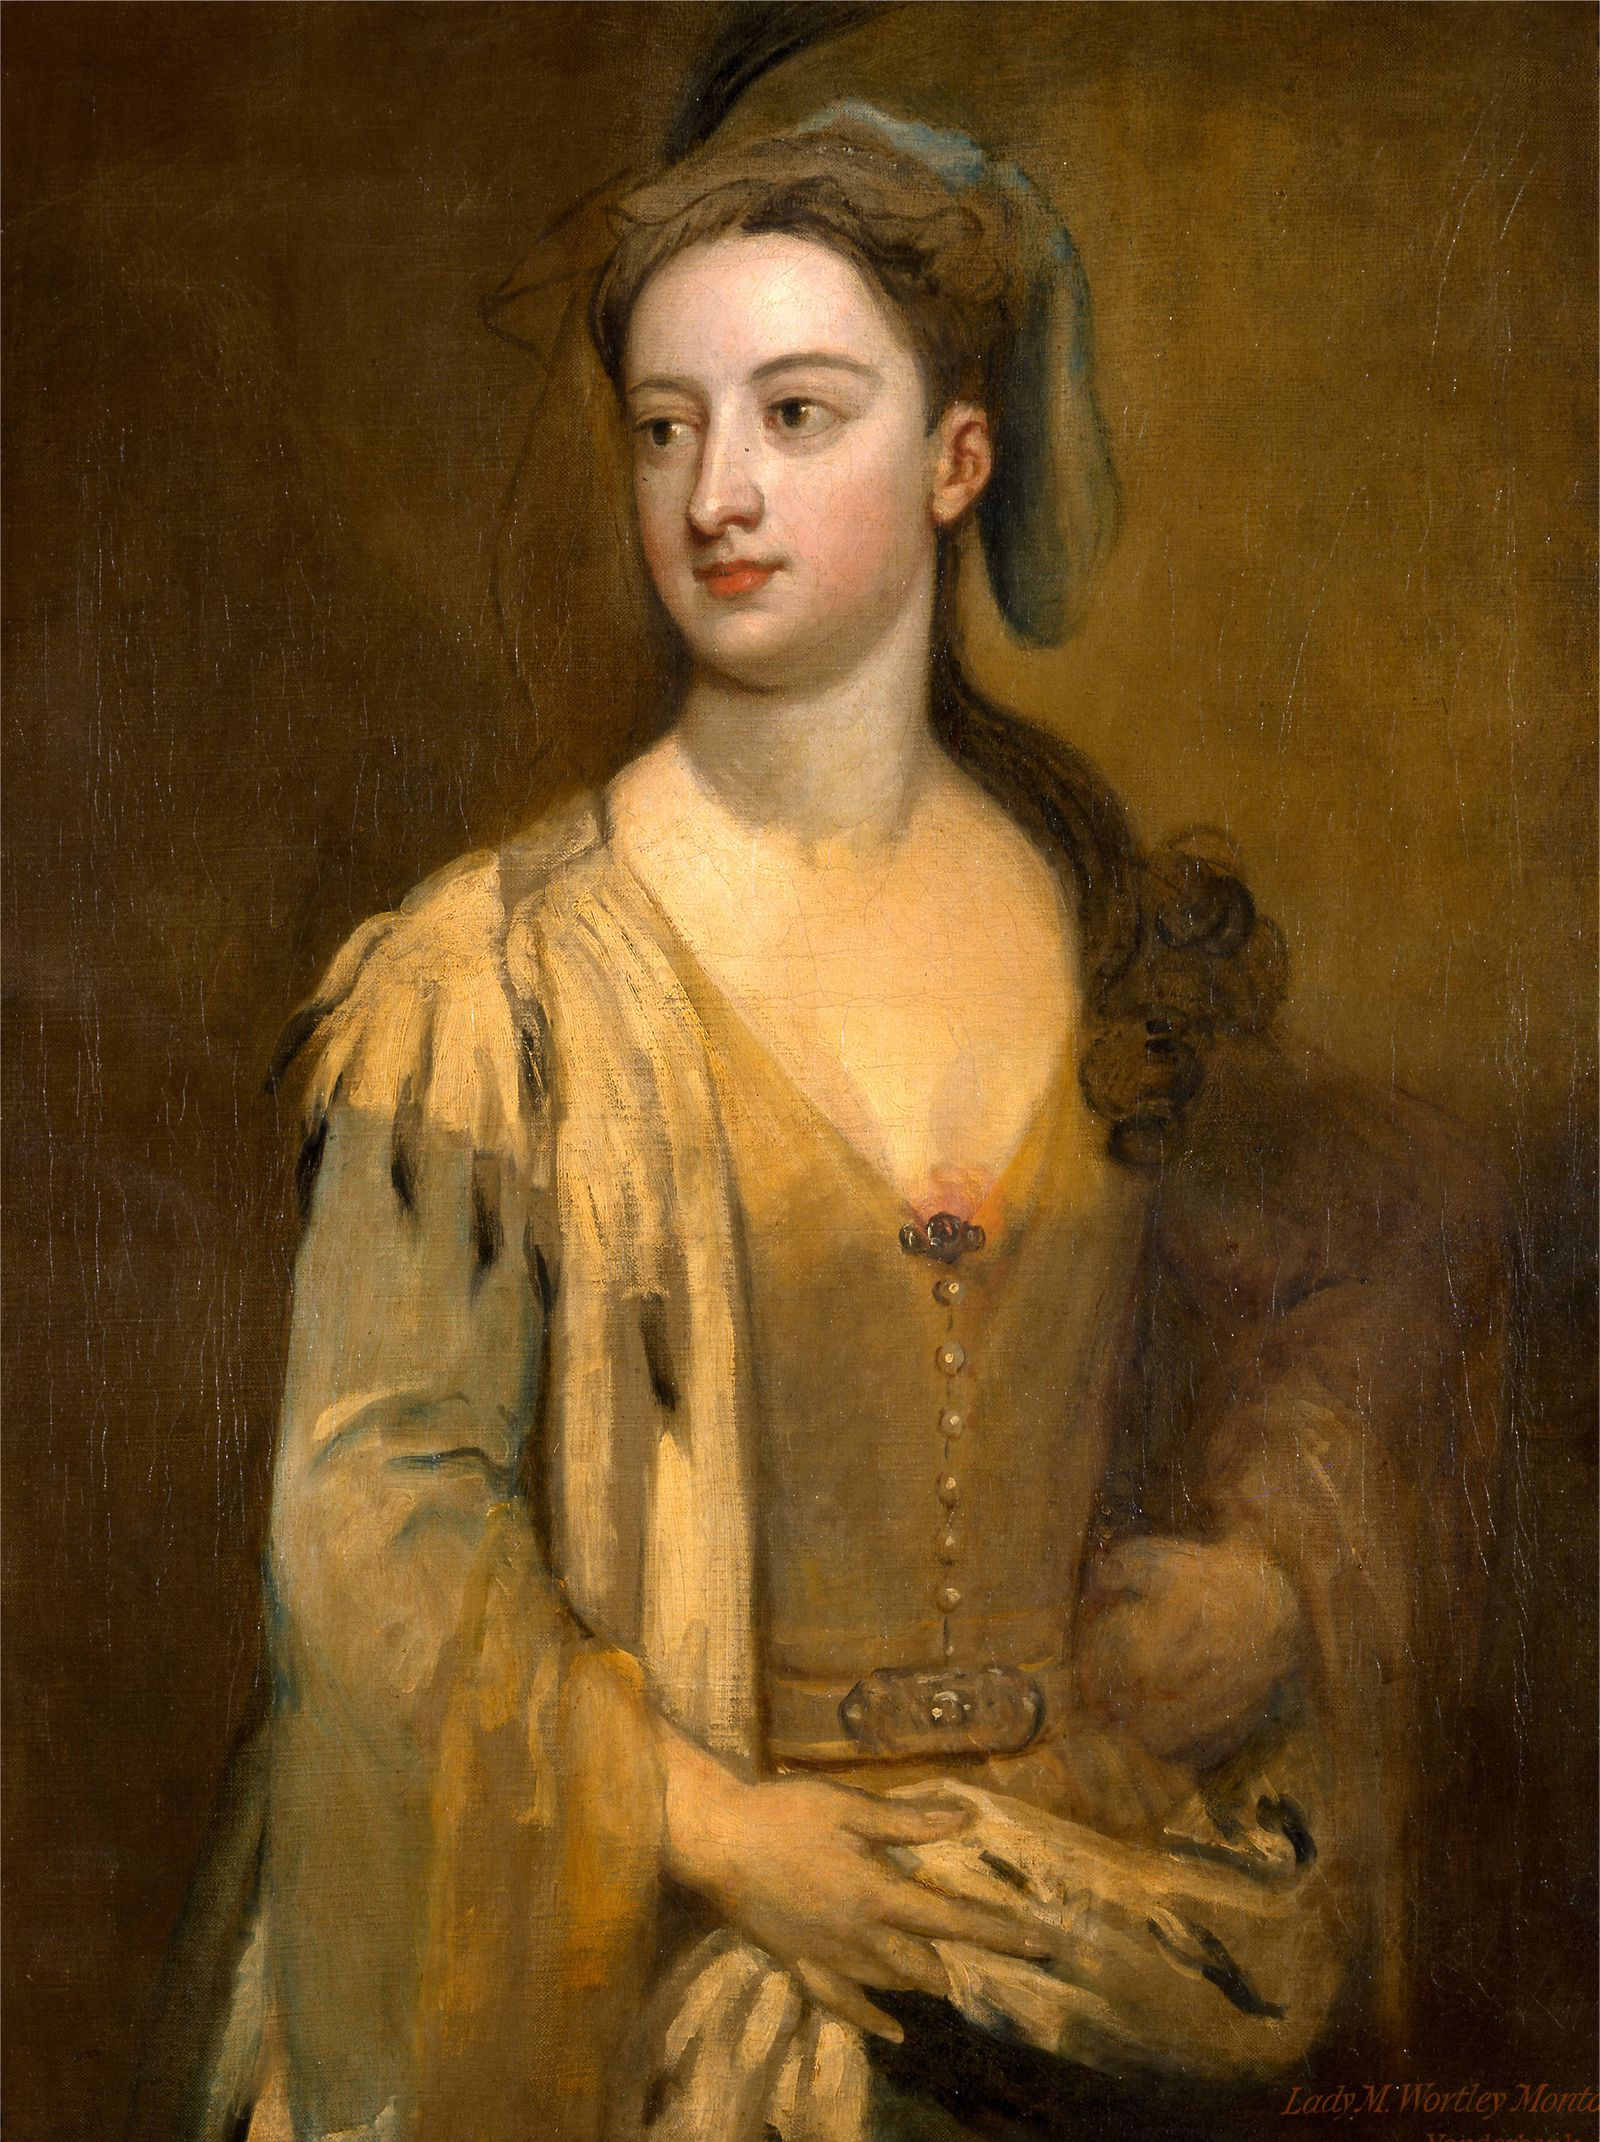 A Woman Called Lady Mary Wortley Montagu Inscribed in red ocher paint lower right Lady M Wortley